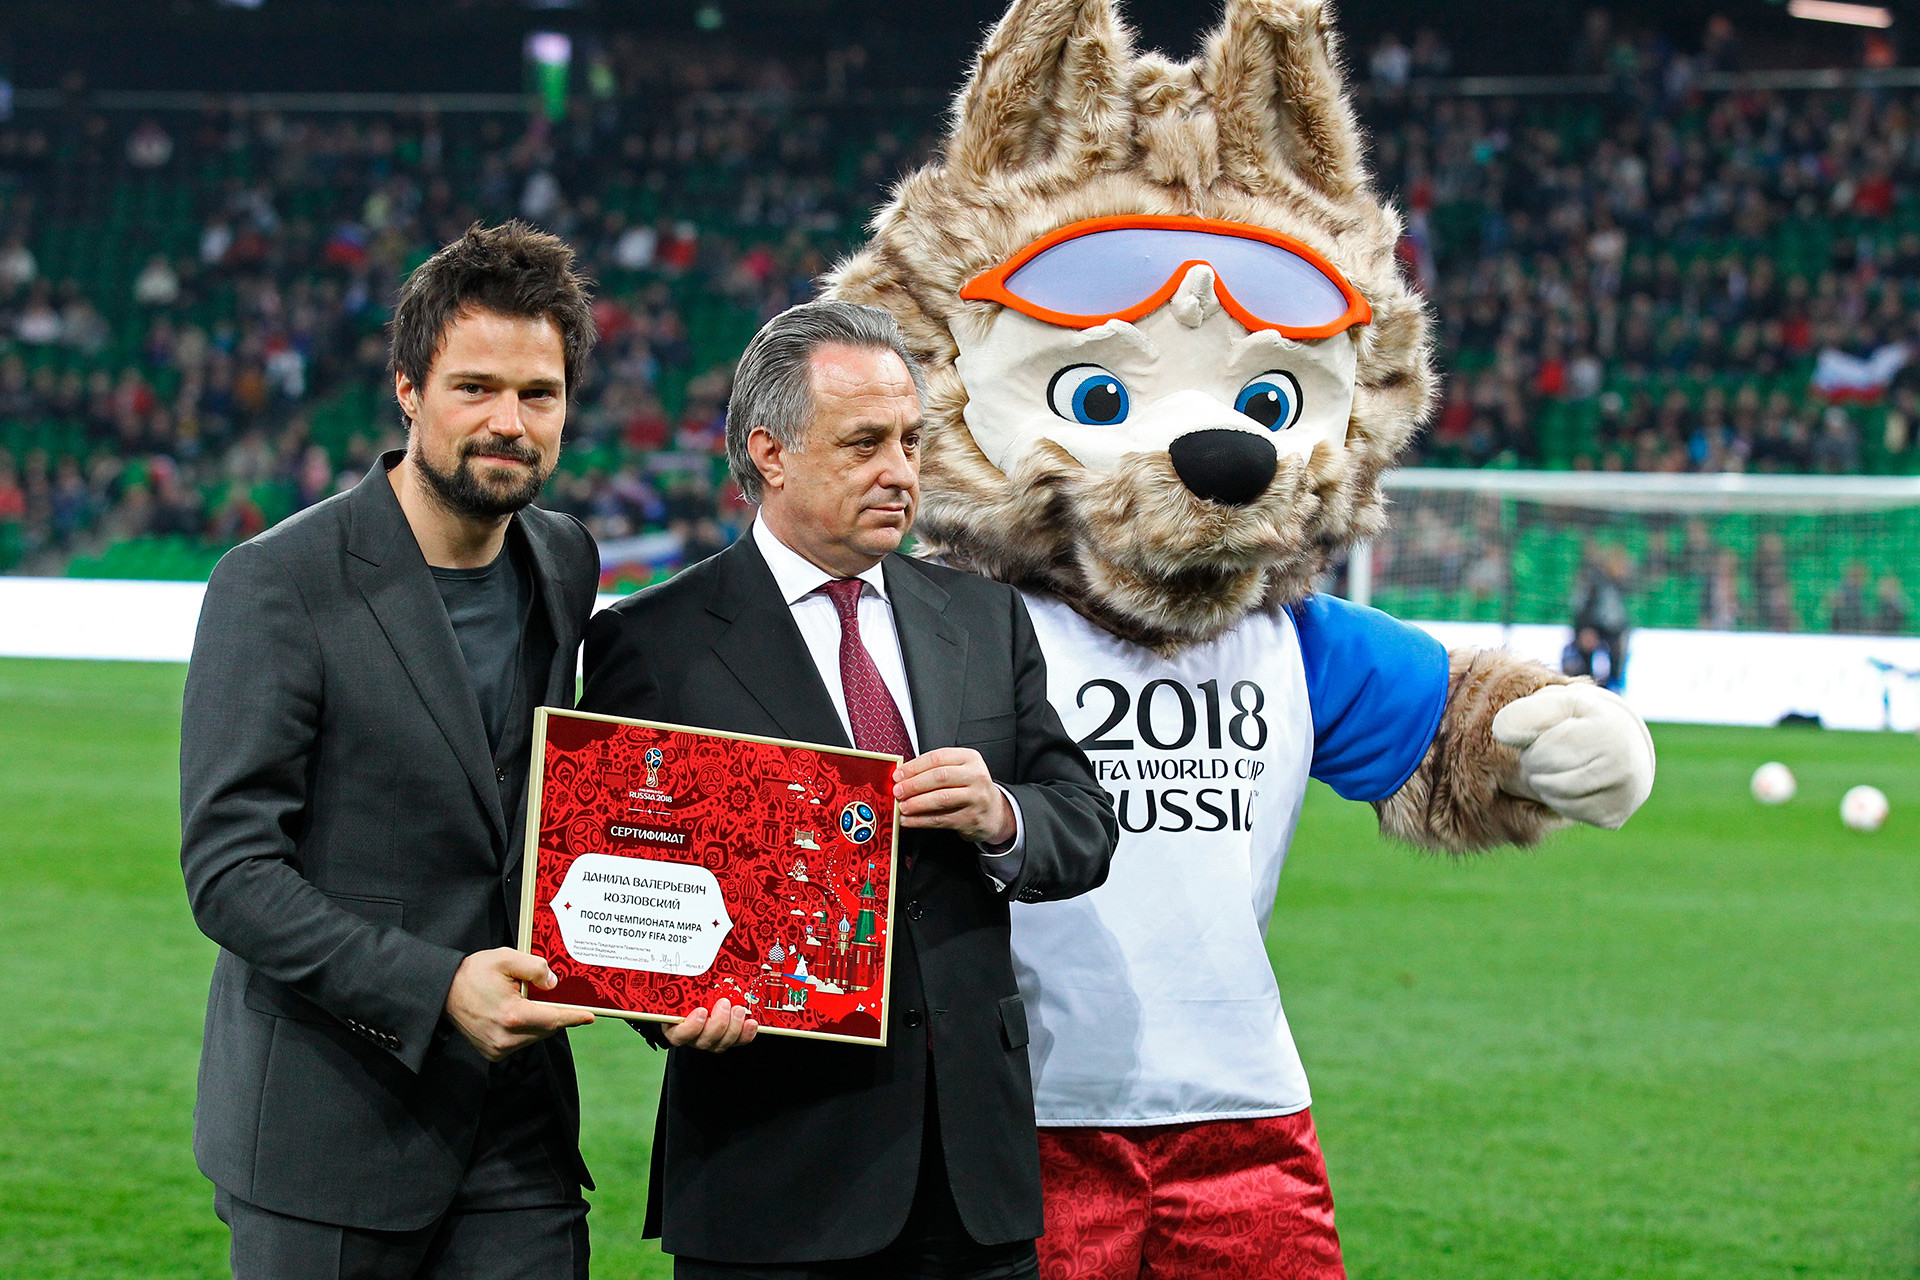 Danila Kozlovsky, President of the Russian Football Union Deputy Prime Minister V. Mutko and the 2018 FIFA World Cup official mascot Zabivaka during the ceremony of certifying Danila Kozlovsky as a 2018 FIFA World Cup Ambassador prior to the football friendly match between Russia and Côte d'Ivoire.